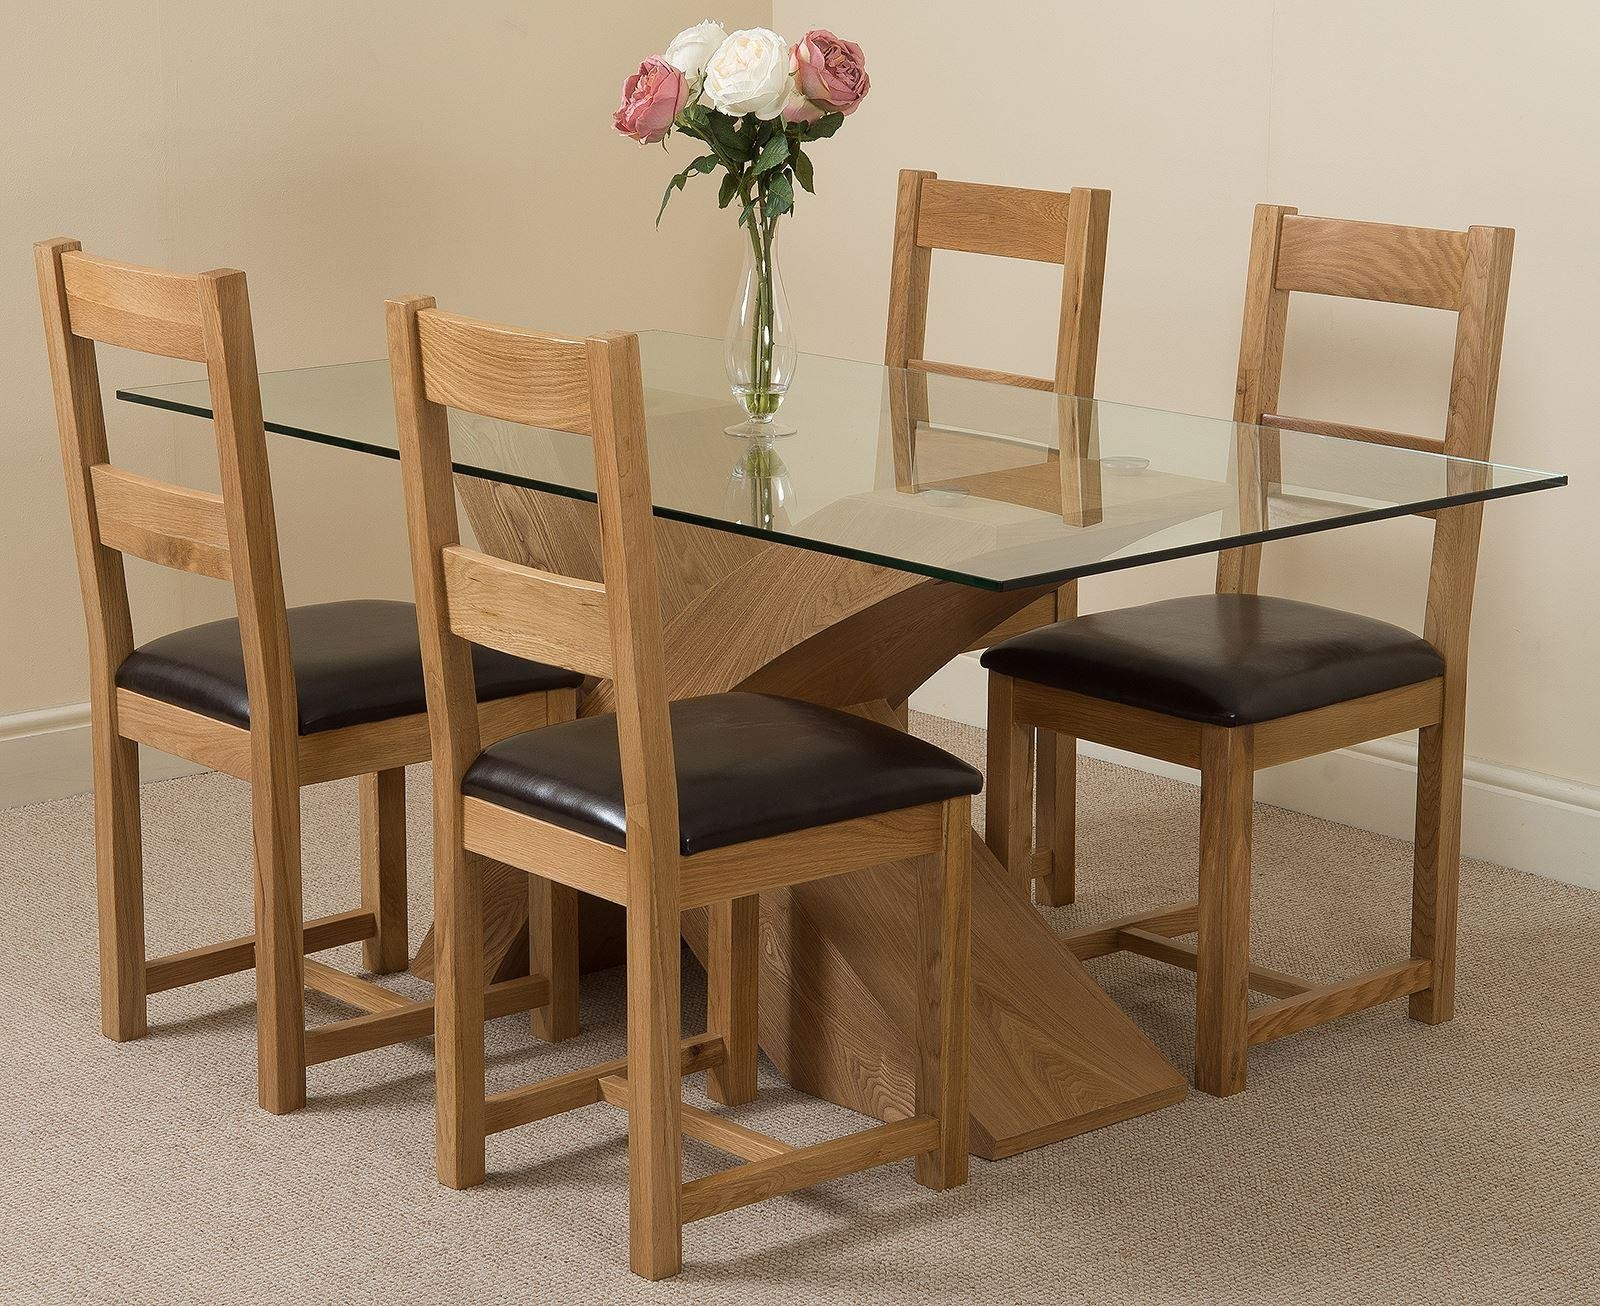 Valencia Oak 160cm Wood And Glass Dining Table With 4 Lincoln Solid Chairs Light Brown Leather